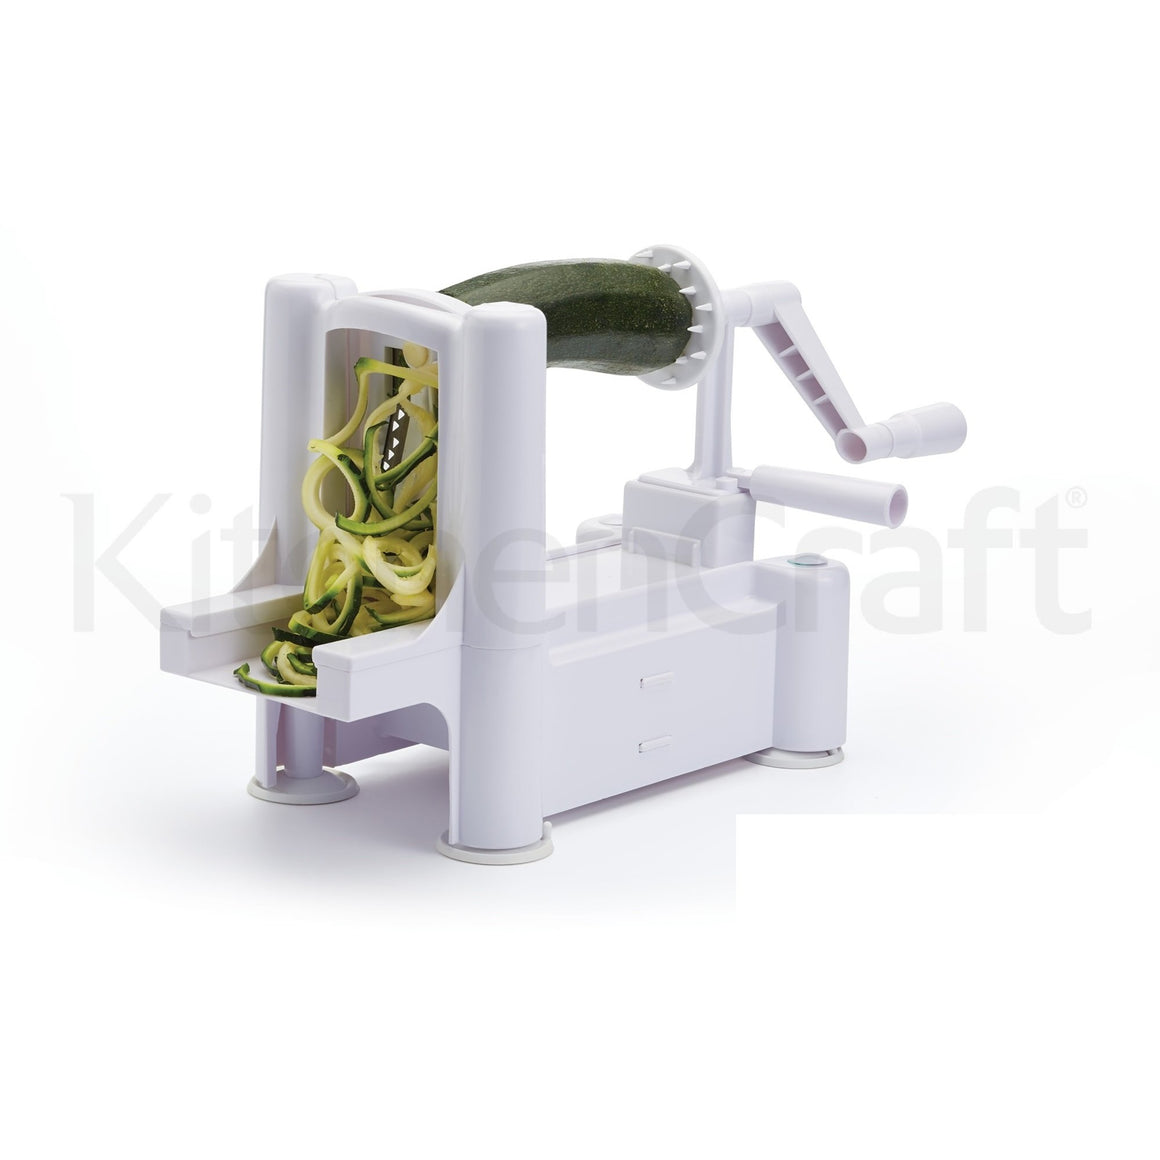 Kitchencraft Large Spiralizer